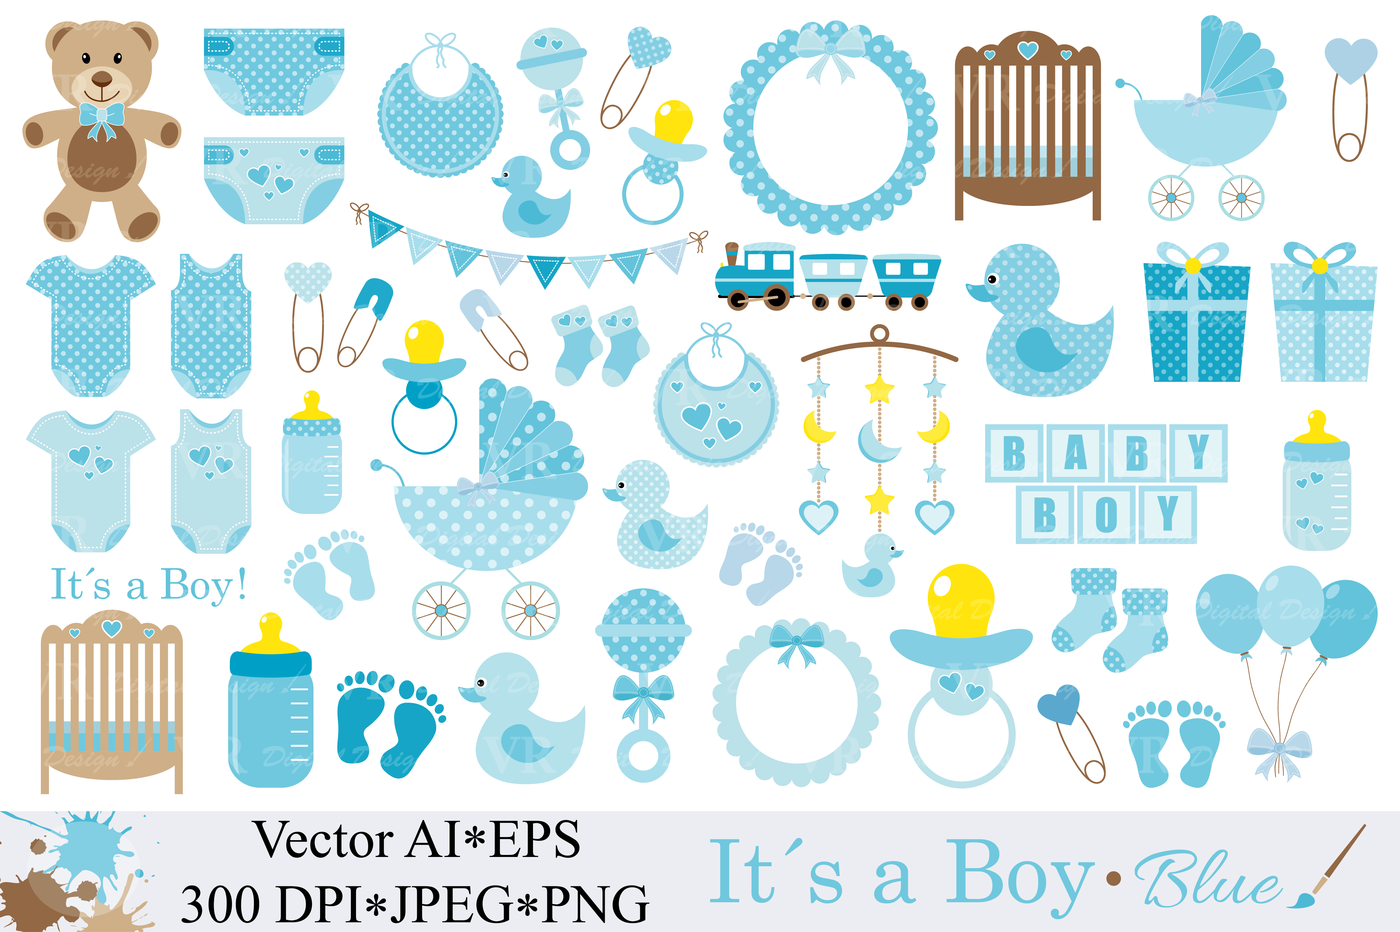 Baby Boy Clipart Blue Baby Shower Clipart Vector By Vr Digital Design Thehungryjpeg Com